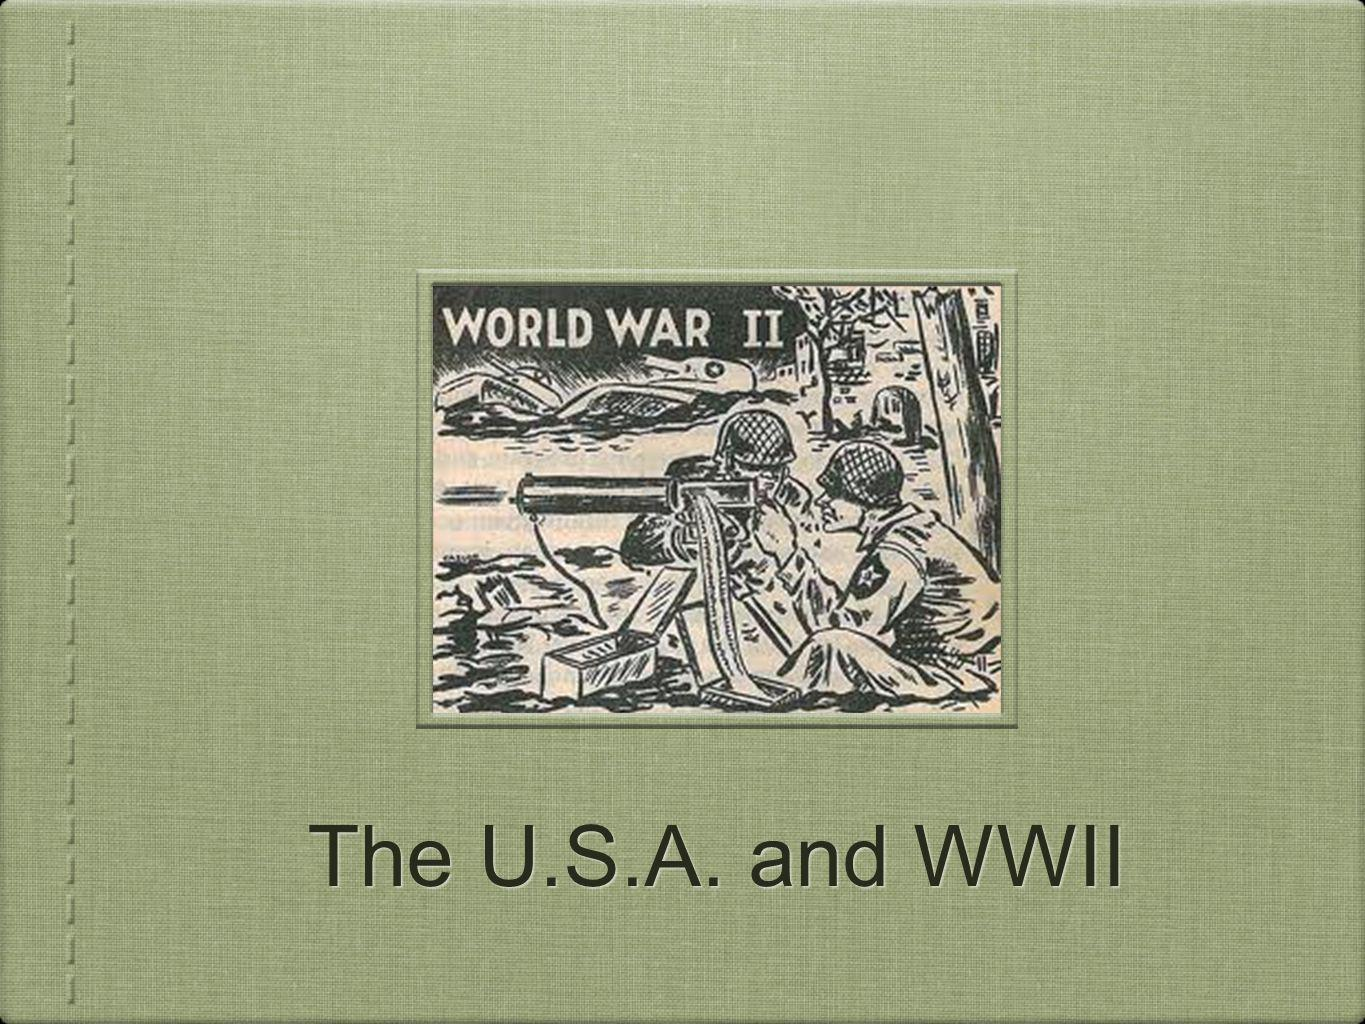 The U.S.A. and WWII